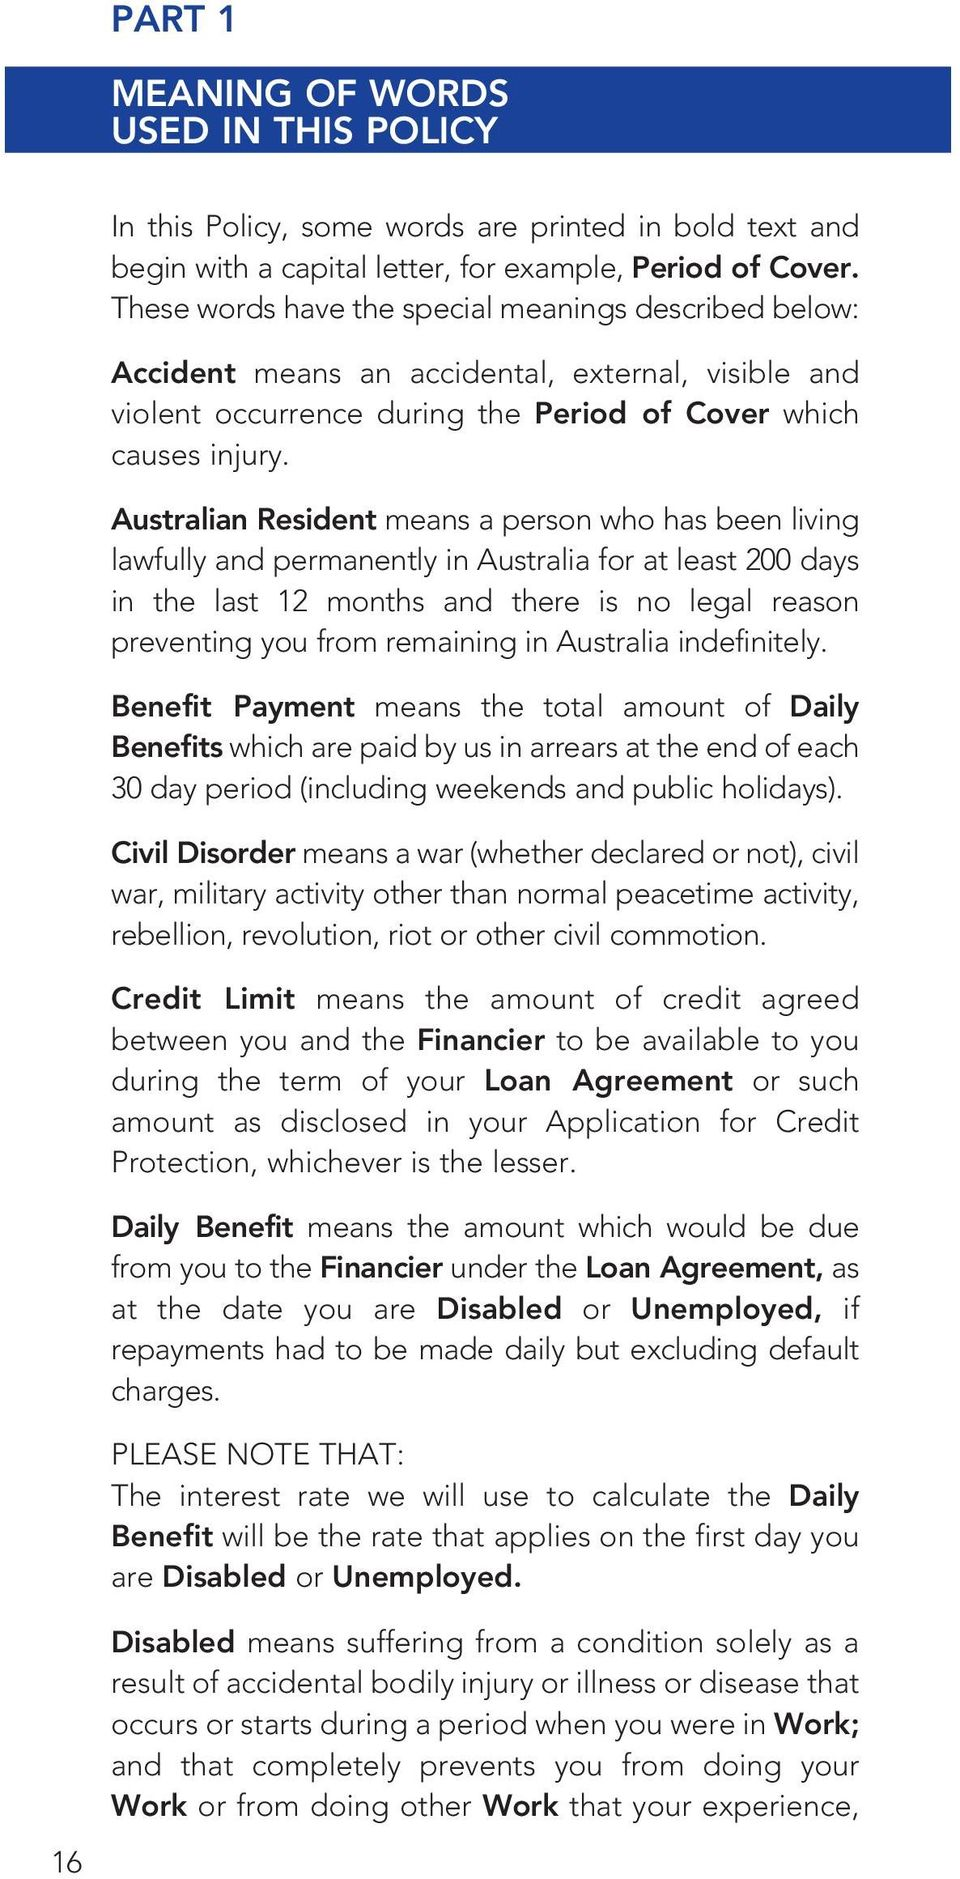 Australian Resident means a person who has been living lawfully and permanently in Australia for at least 200 days in the last 12 months and there is no legal reason preventing you from remaining in